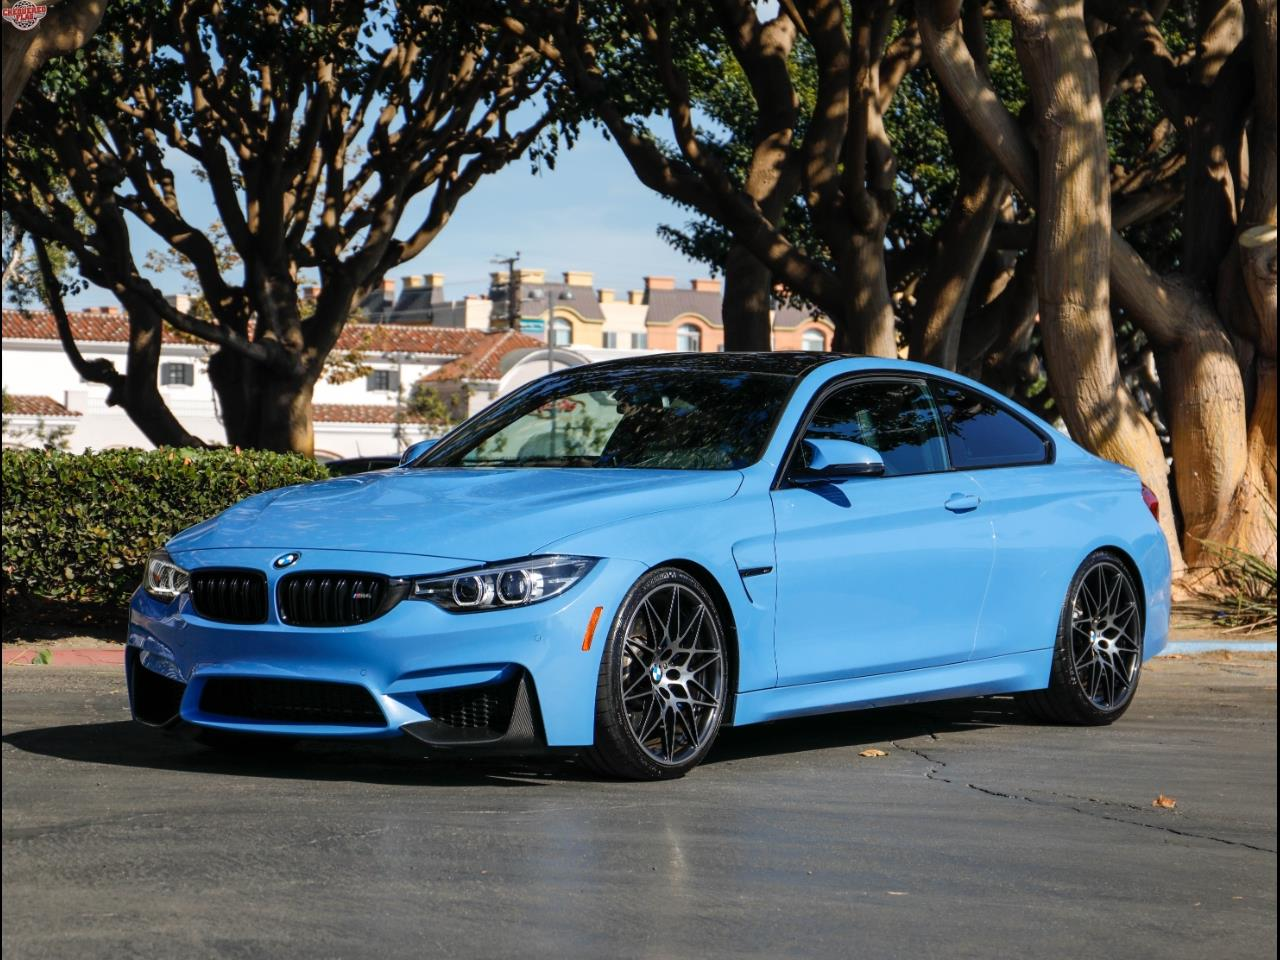 2018 Bmw M4 For Sale Classiccars Com Cc 1158960